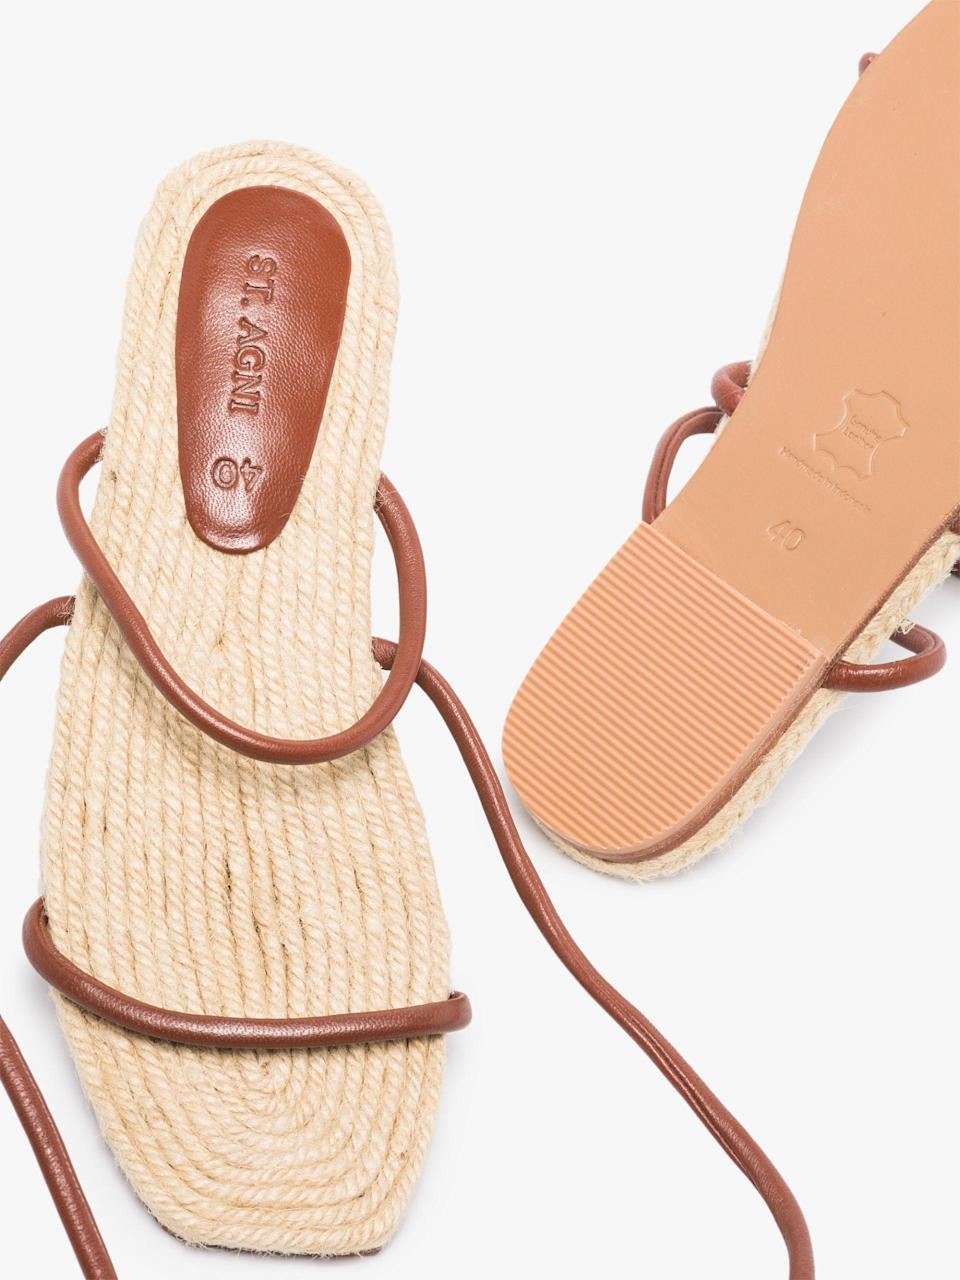 """<br><br><strong>St. Agni</strong> Brown Leo Ankle Tie Leather Sandals, $, available at <a href=""""https://go.skimresources.com/?id=30283X879131&url=https%3A%2F%2Fwww.brownsfashion.com%2Fshopping%2Fst-agni-brown-leo-ankle-tie-leather-sandals-16055384%3Ffsb%3D1"""" rel=""""nofollow noopener"""" target=""""_blank"""" data-ylk=""""slk:Browns"""" class=""""link rapid-noclick-resp"""">Browns</a>"""